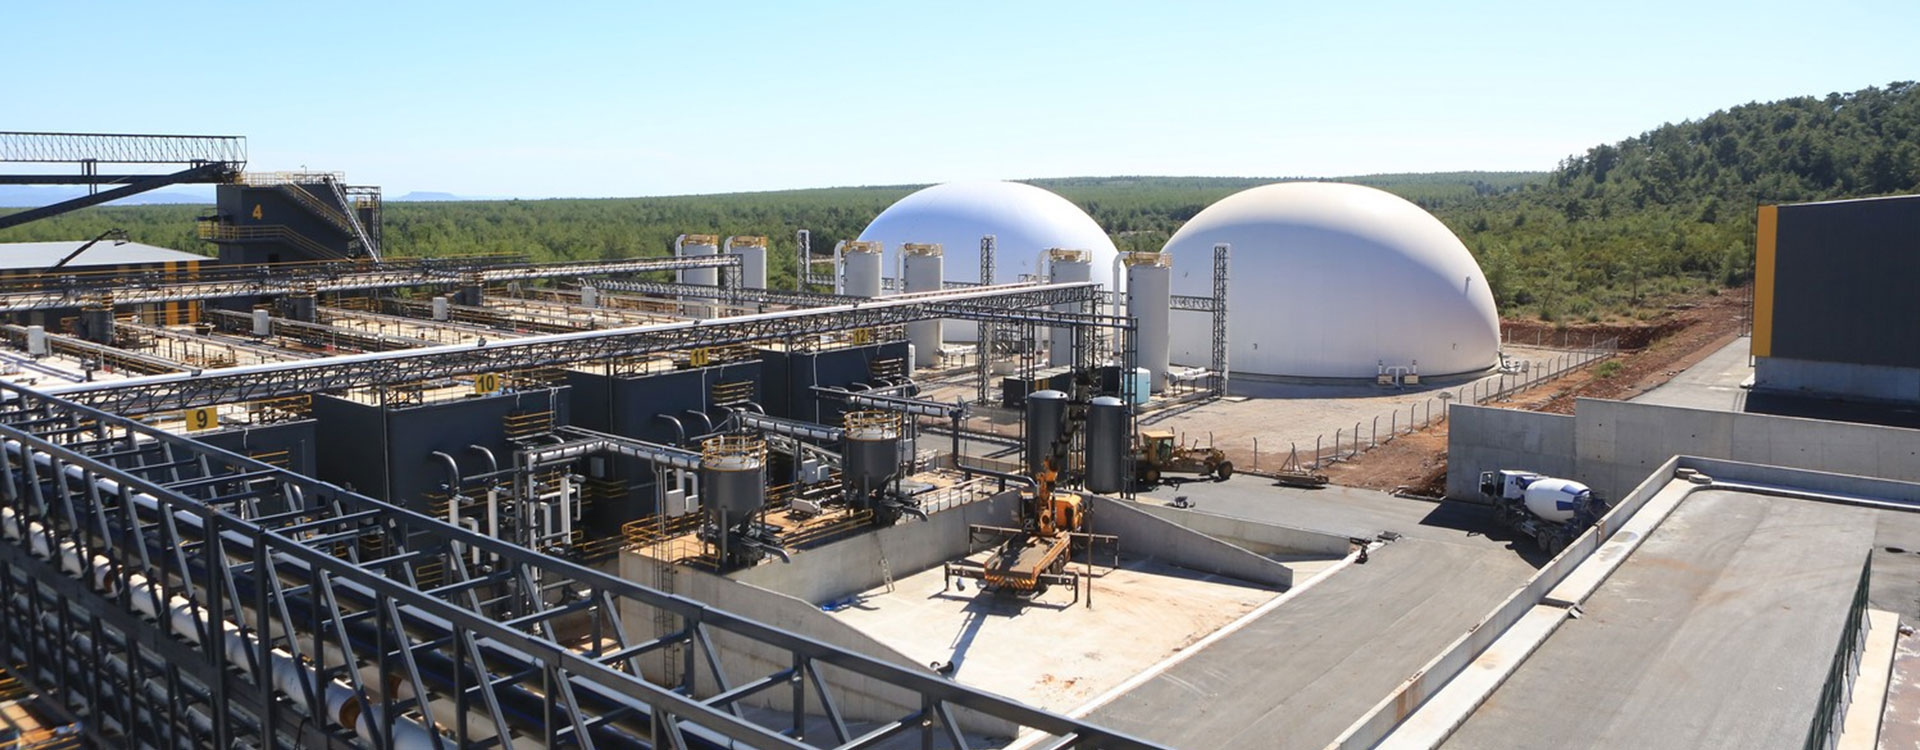 BioFuel Power Plant